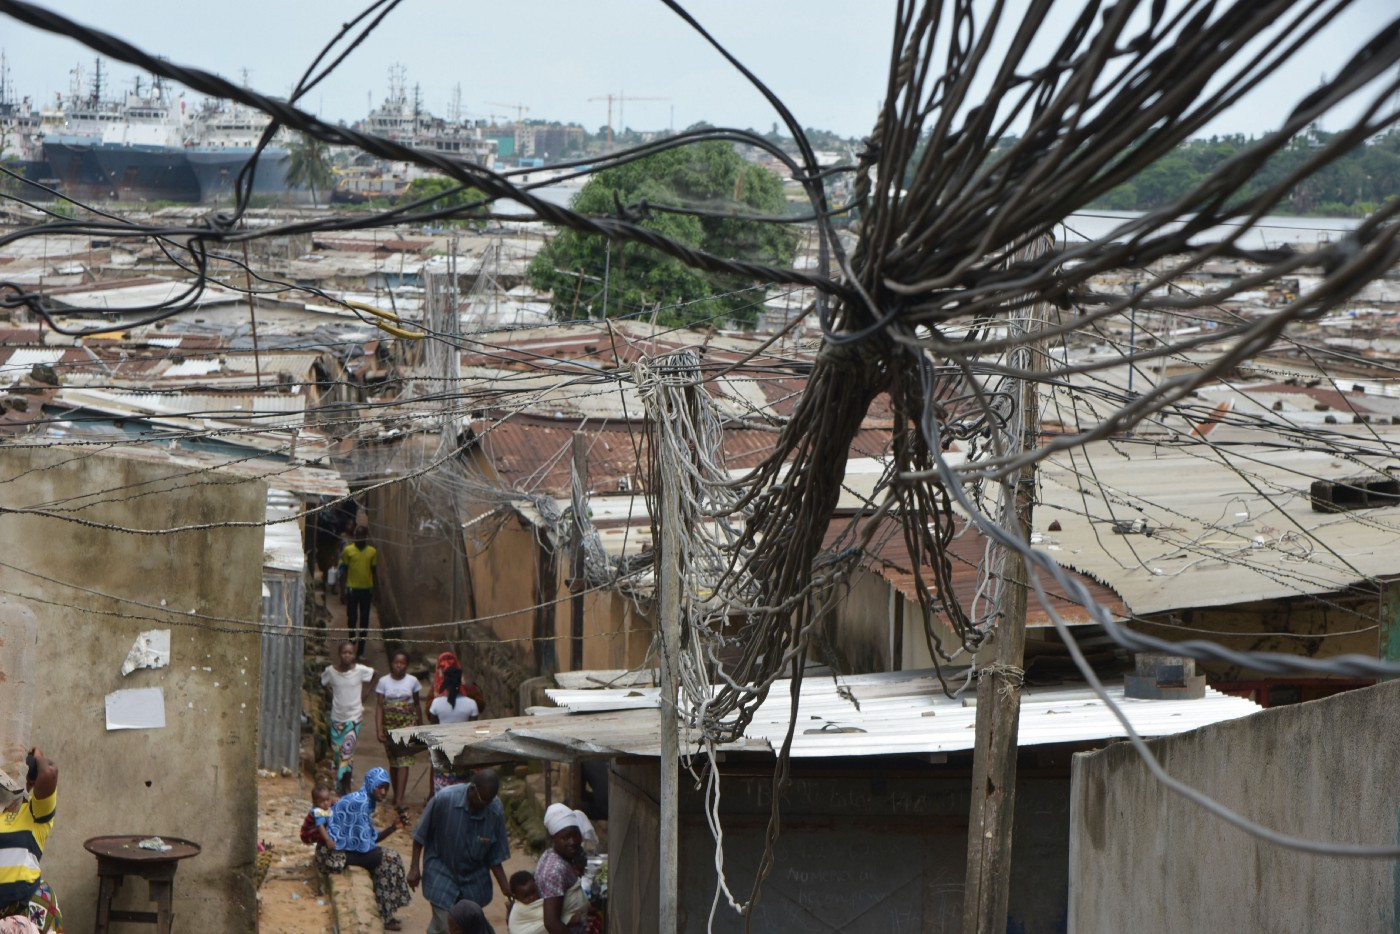 People walk under electric wires connected above roofs in a district of Abidjan, Côte d'Ivoire on June 1, 2019.